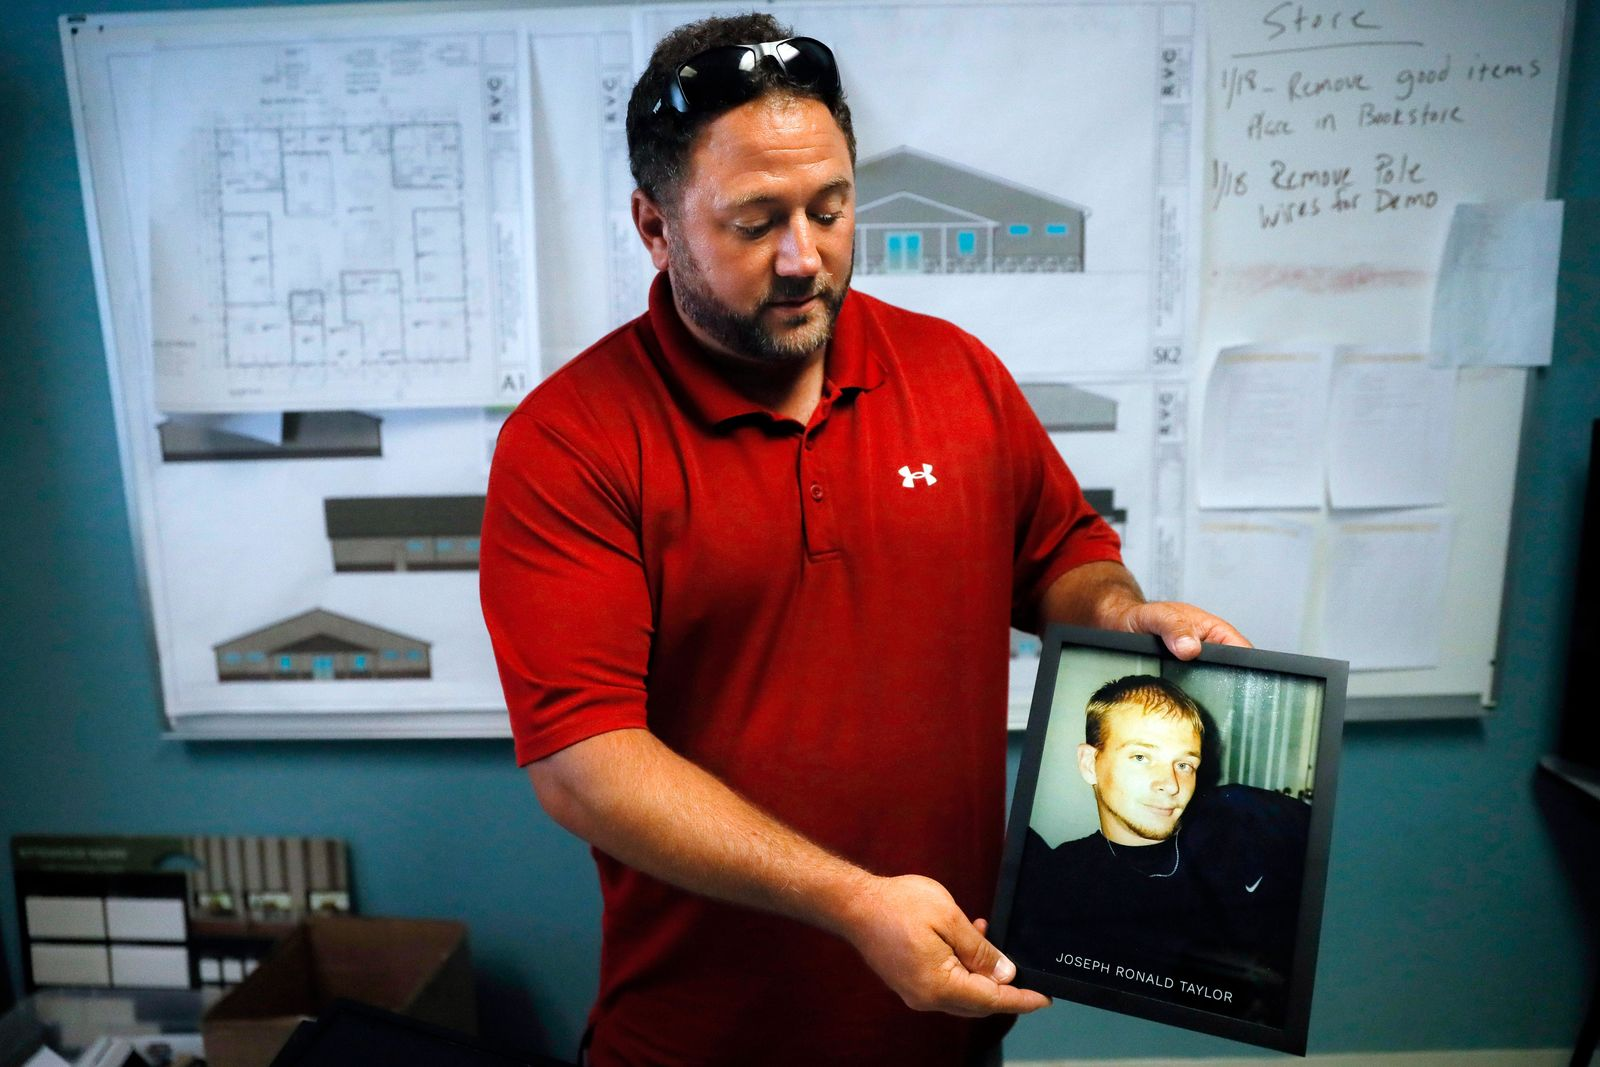 FILE - In this July 17, 2019, file photo Justin Oyer, executive director at Warriors 4 Christ, an addiction recovery center and program, holds an image of his cousin Joseph Ronald Taylor, who died from opioid addiction in Jackson, Ohio. (AP Photo/John Minchillo, File)